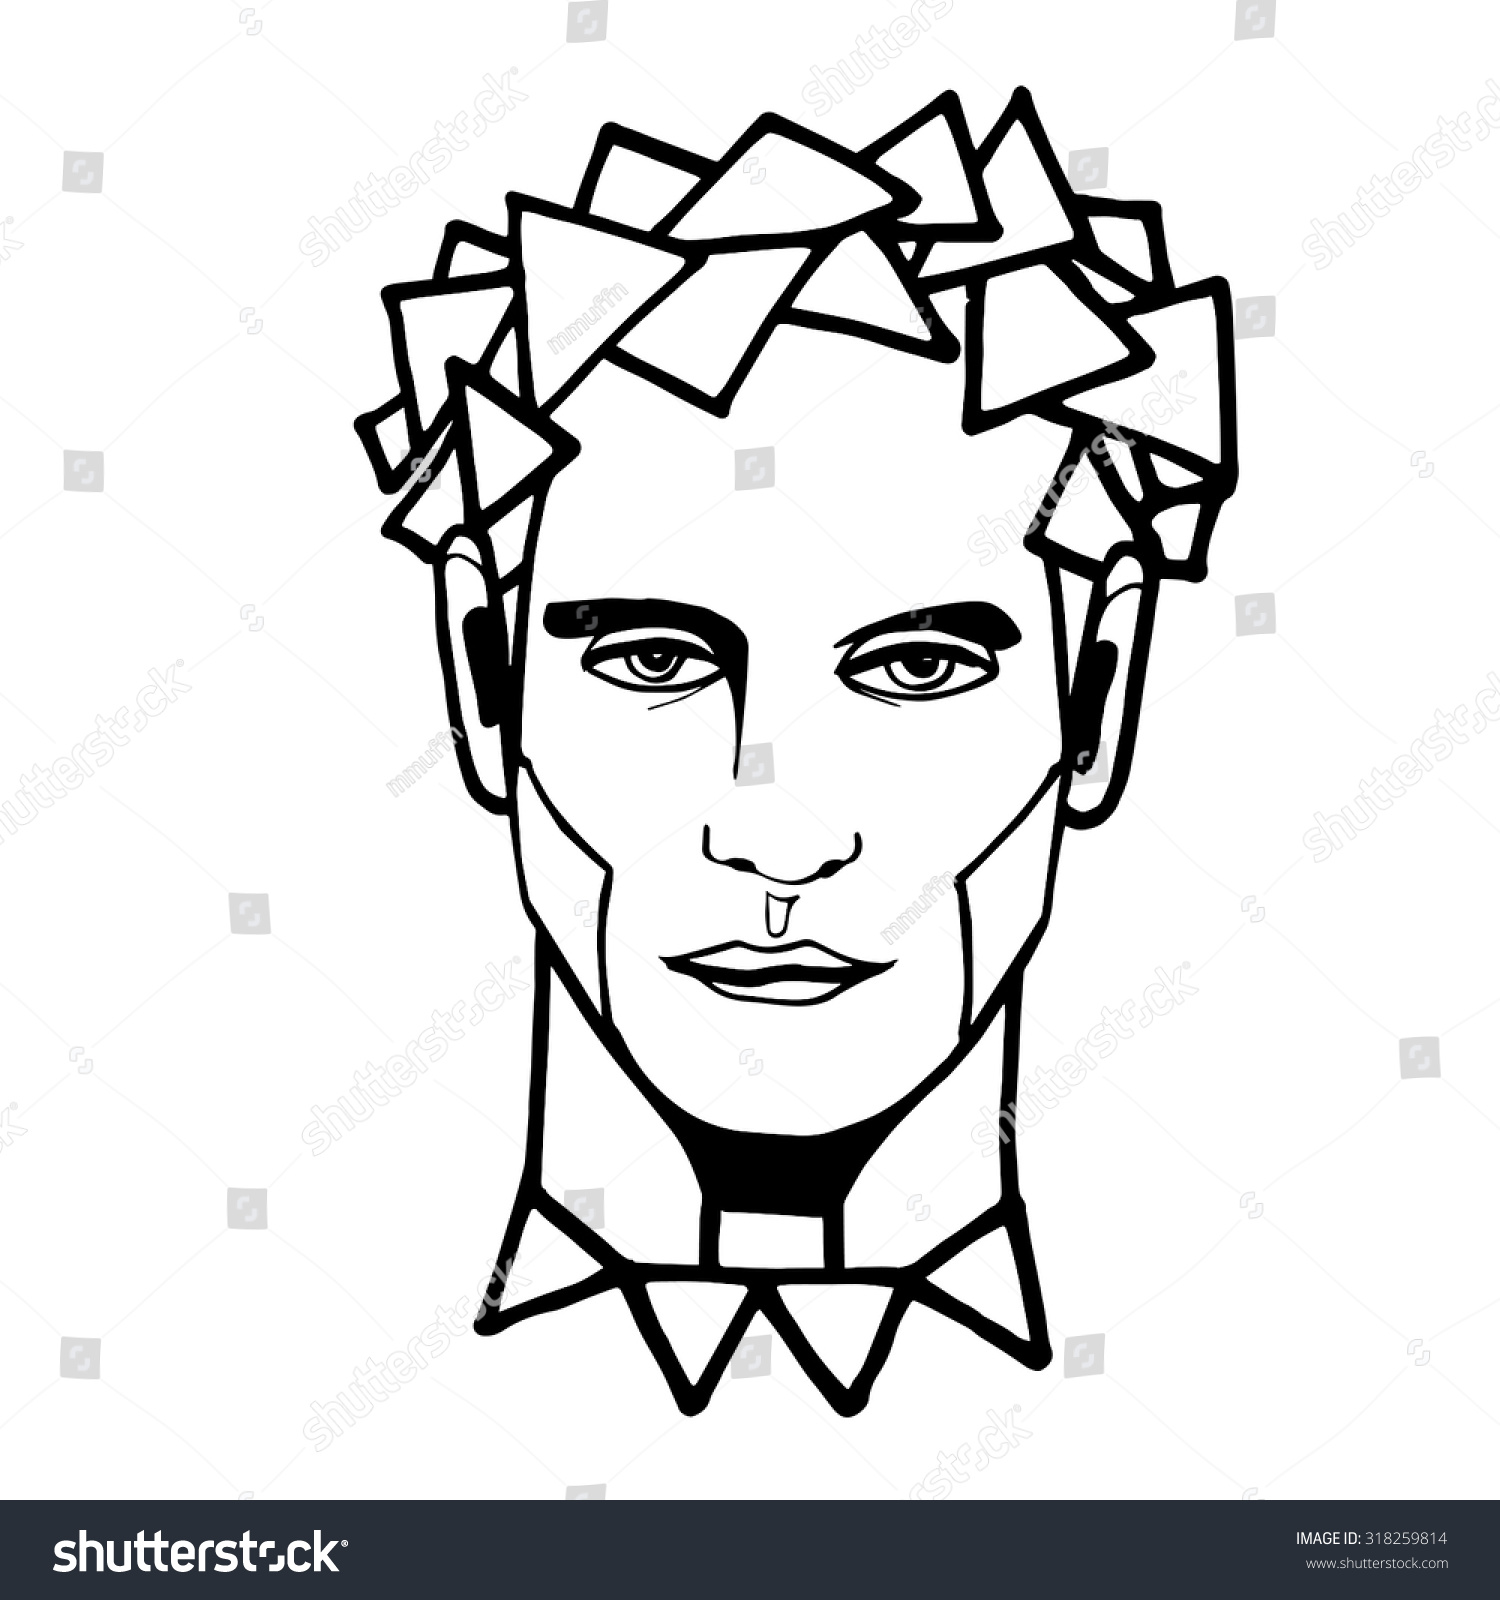 Line Art Man : Man portrait face drawing drawings art arts graphic